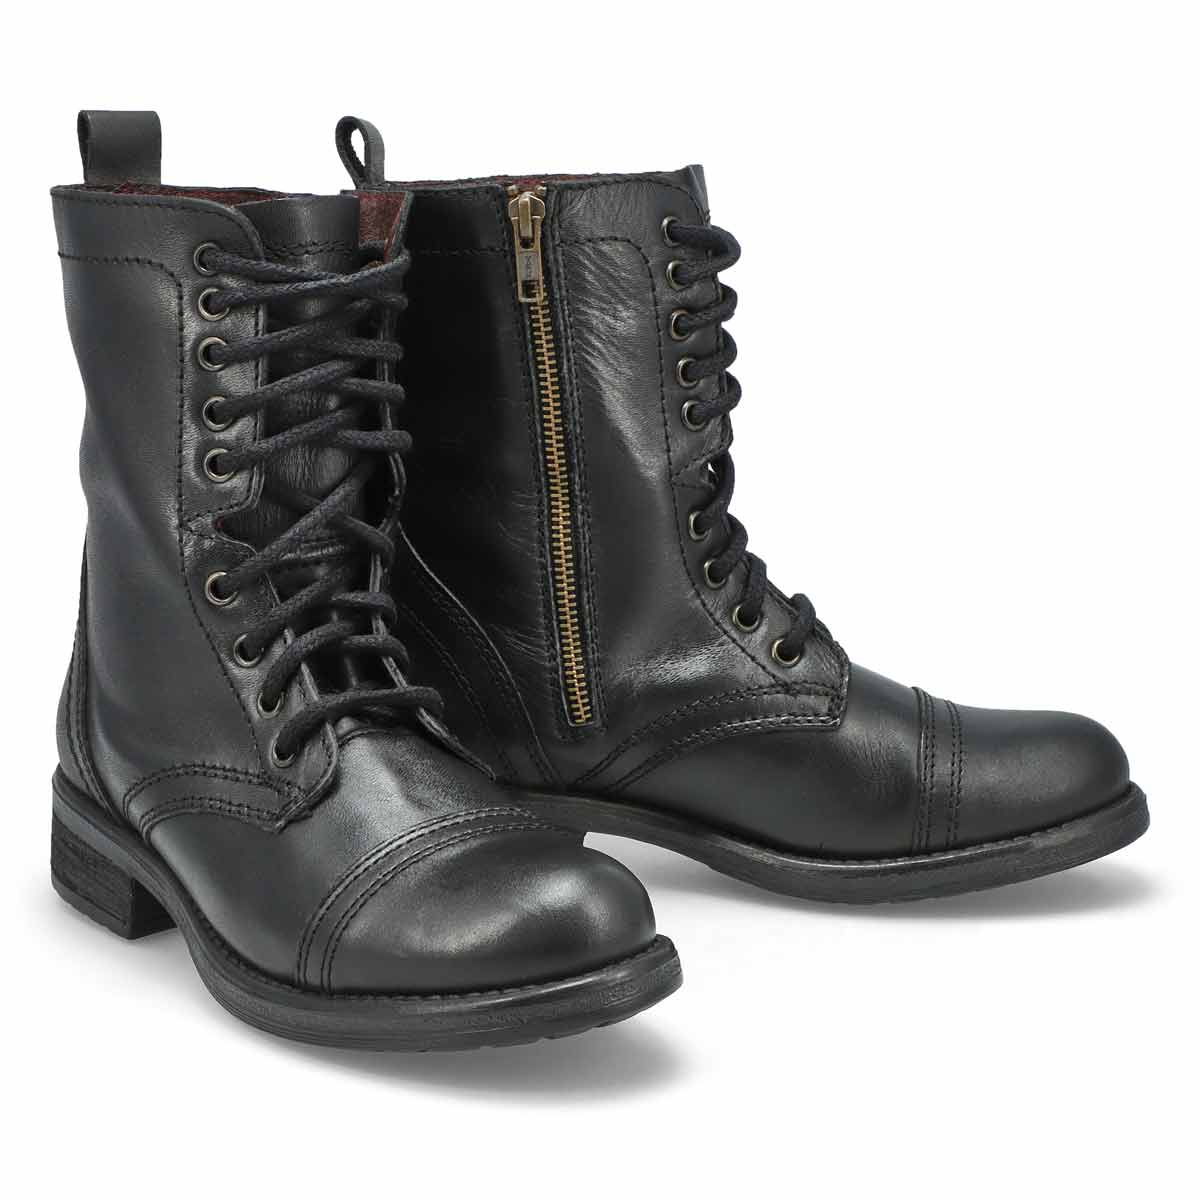 Women's TROOPA 4.0 black lace up combat boots